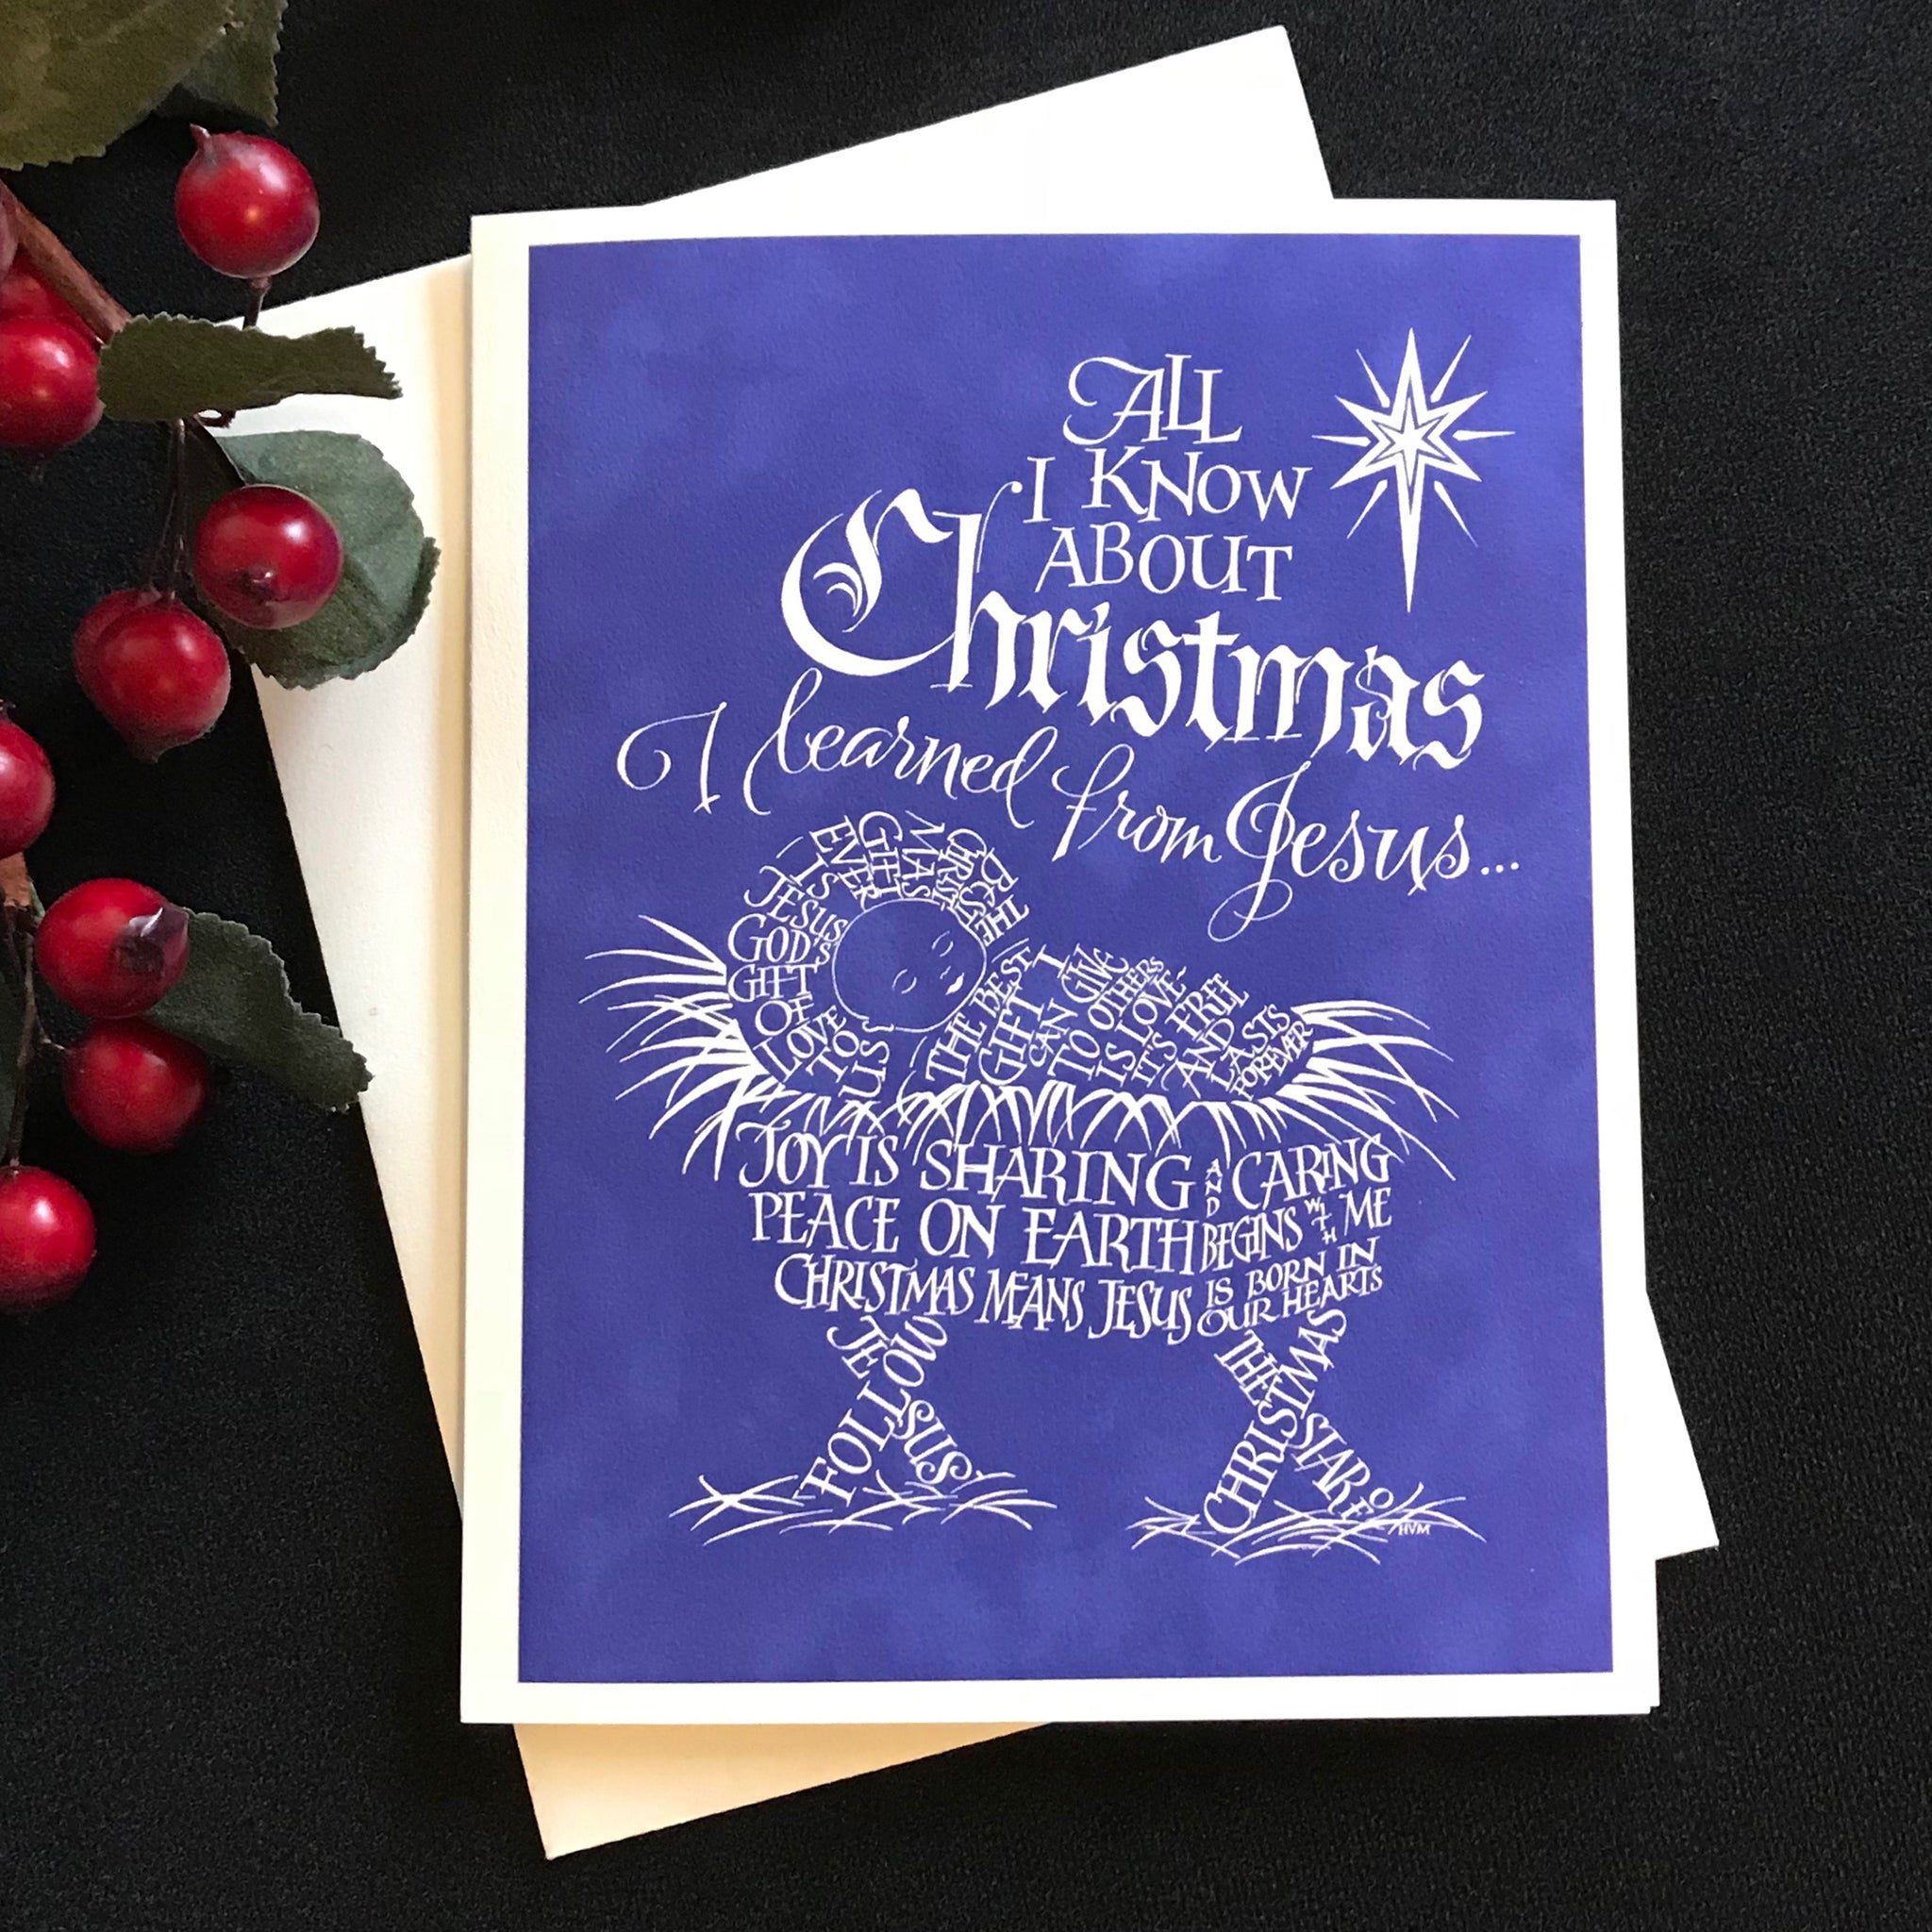 All I Know About Christmas - Calligrapher Holly Monroe